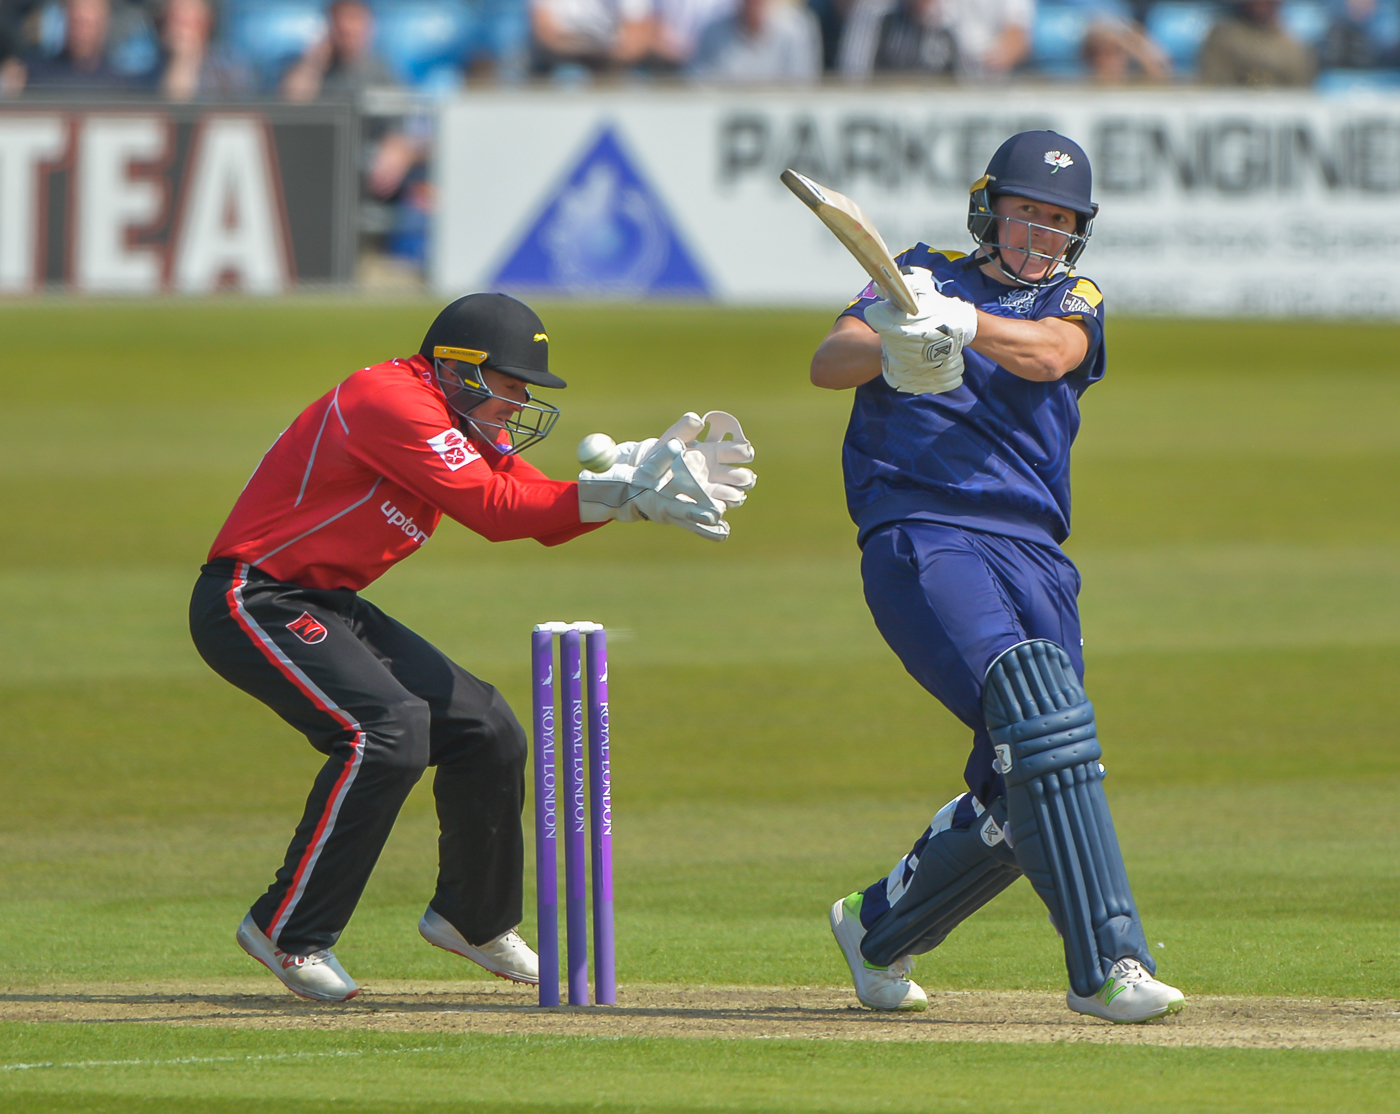 Gary Ballance fired 156 off 166 balls as Yorkshire romped to victory over Leicestershire at Headingley in the Royal London Cup. Picture: Ray Spencer